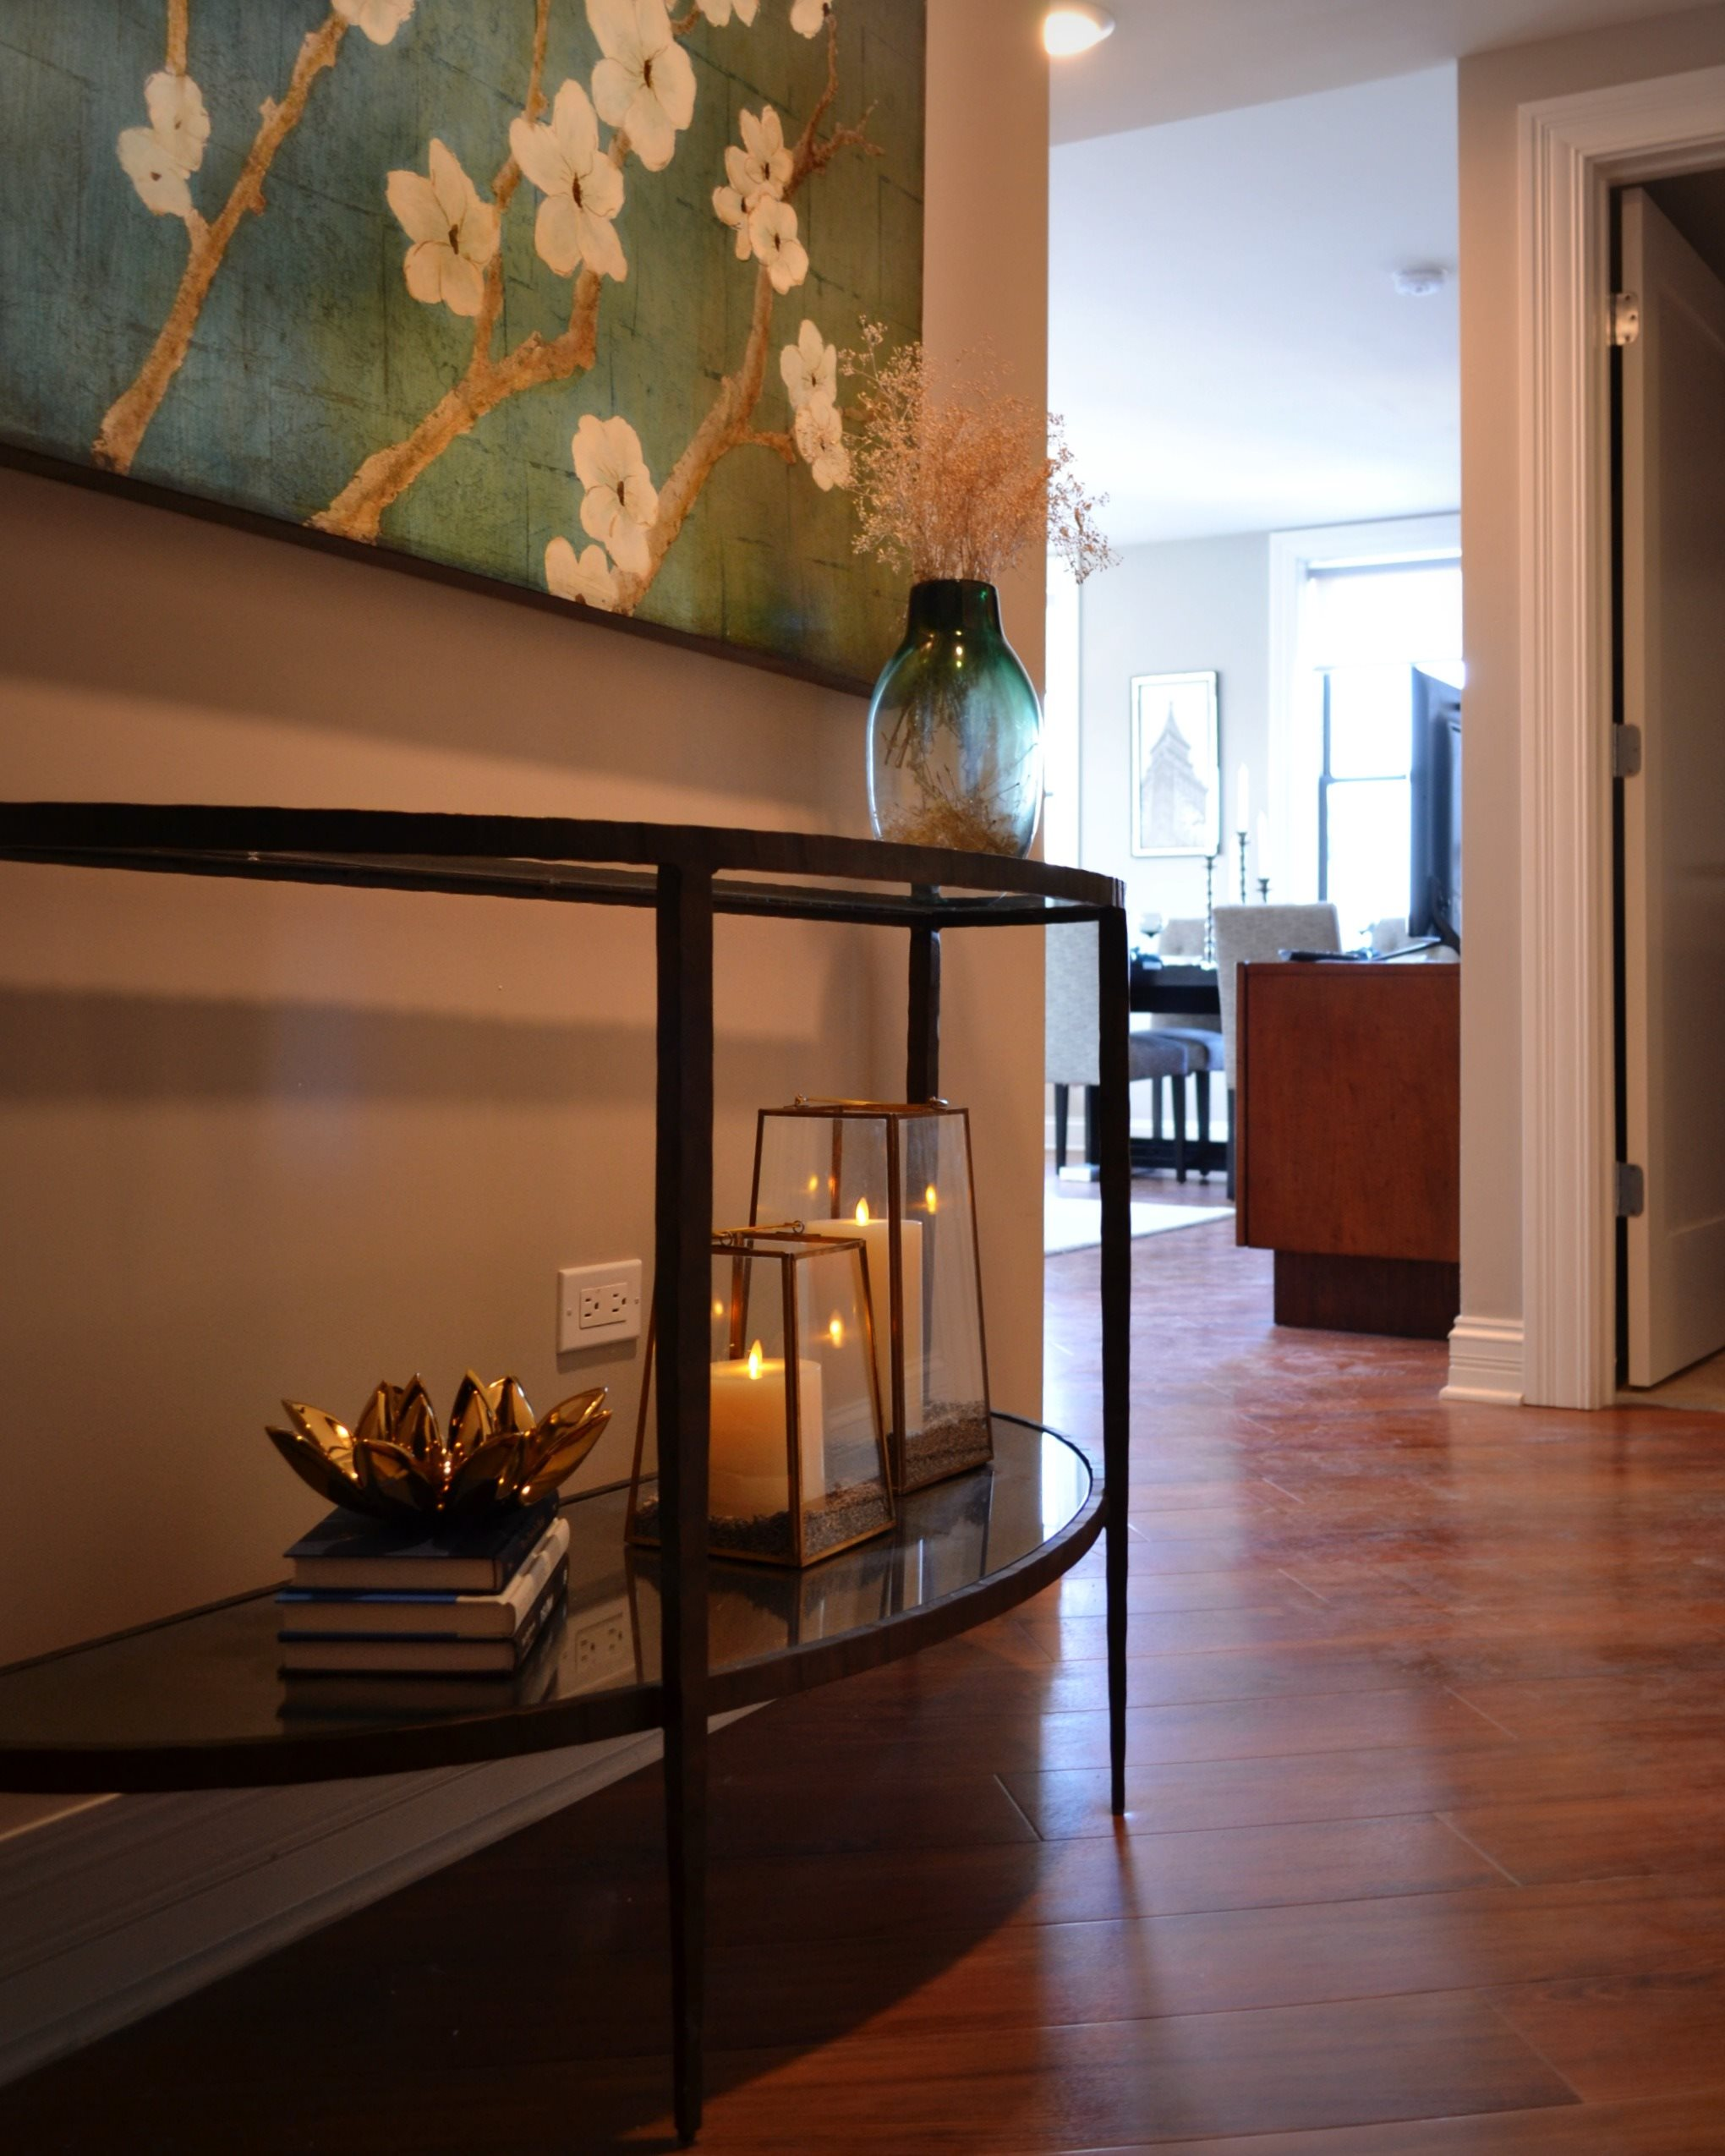 Somerset Apartments: Photos And Video Of Somerset Place Apartments In Chicago, IL